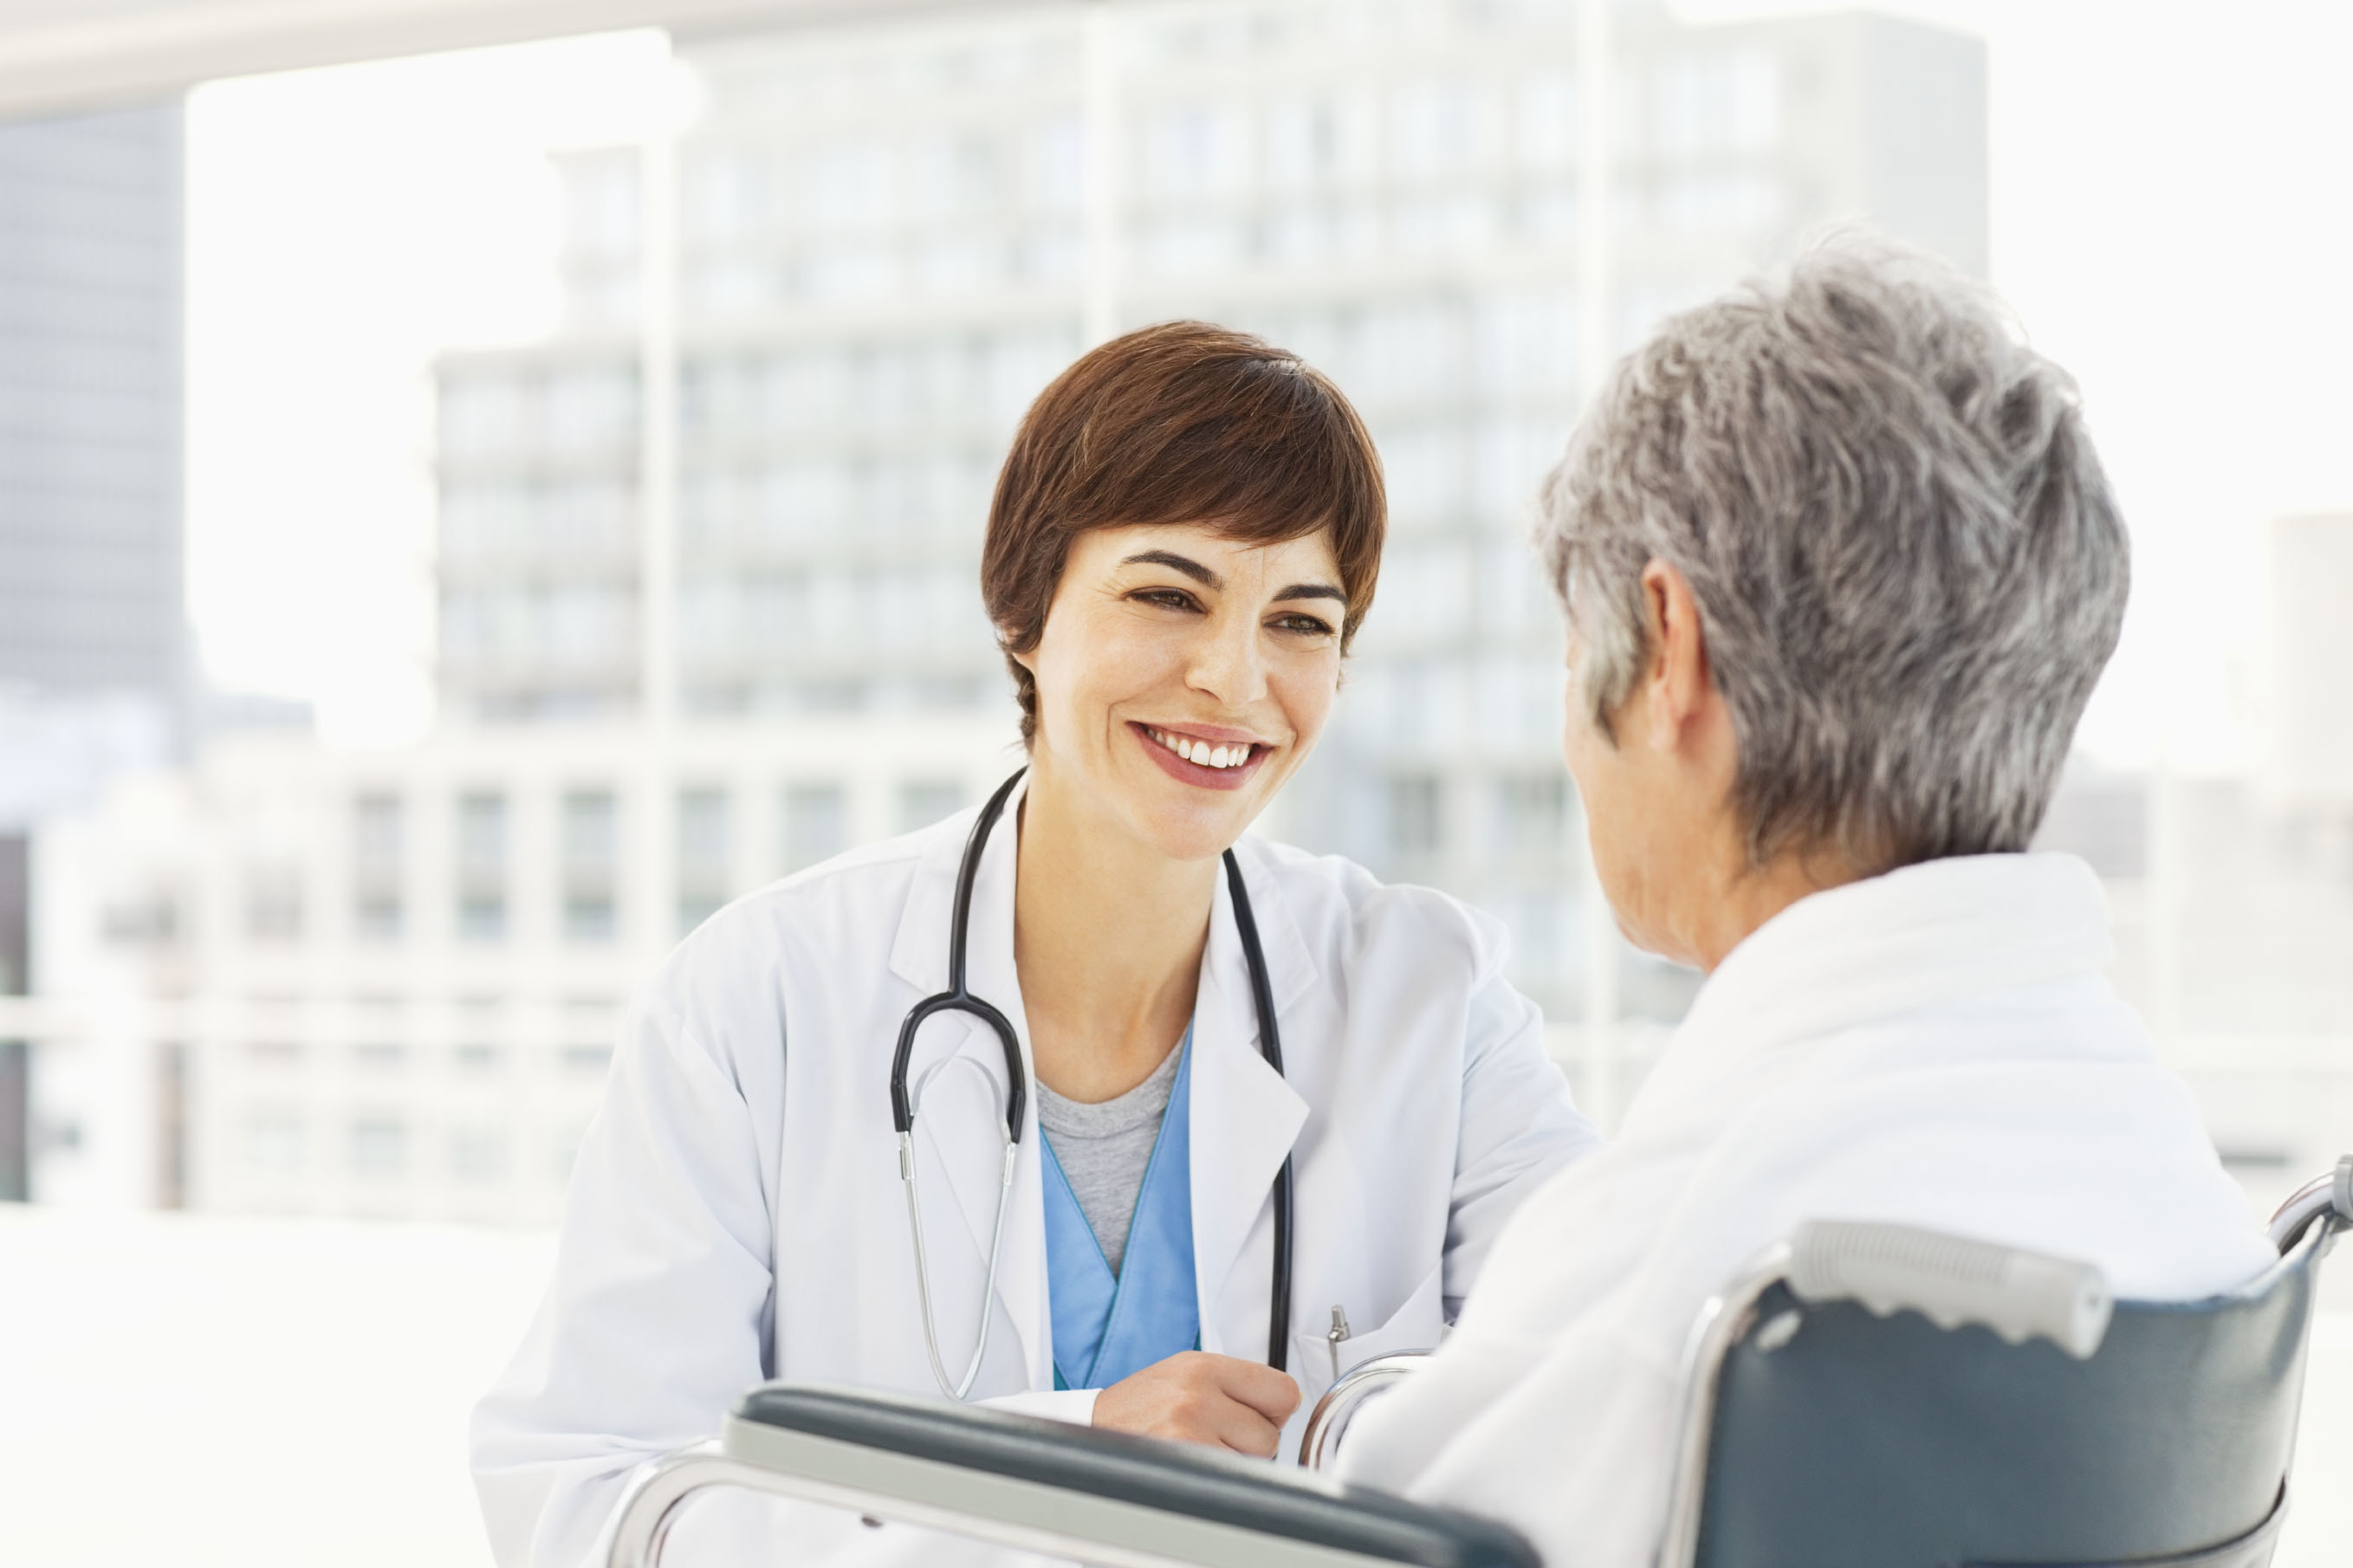 Deciding Where to Go for Immediate Care